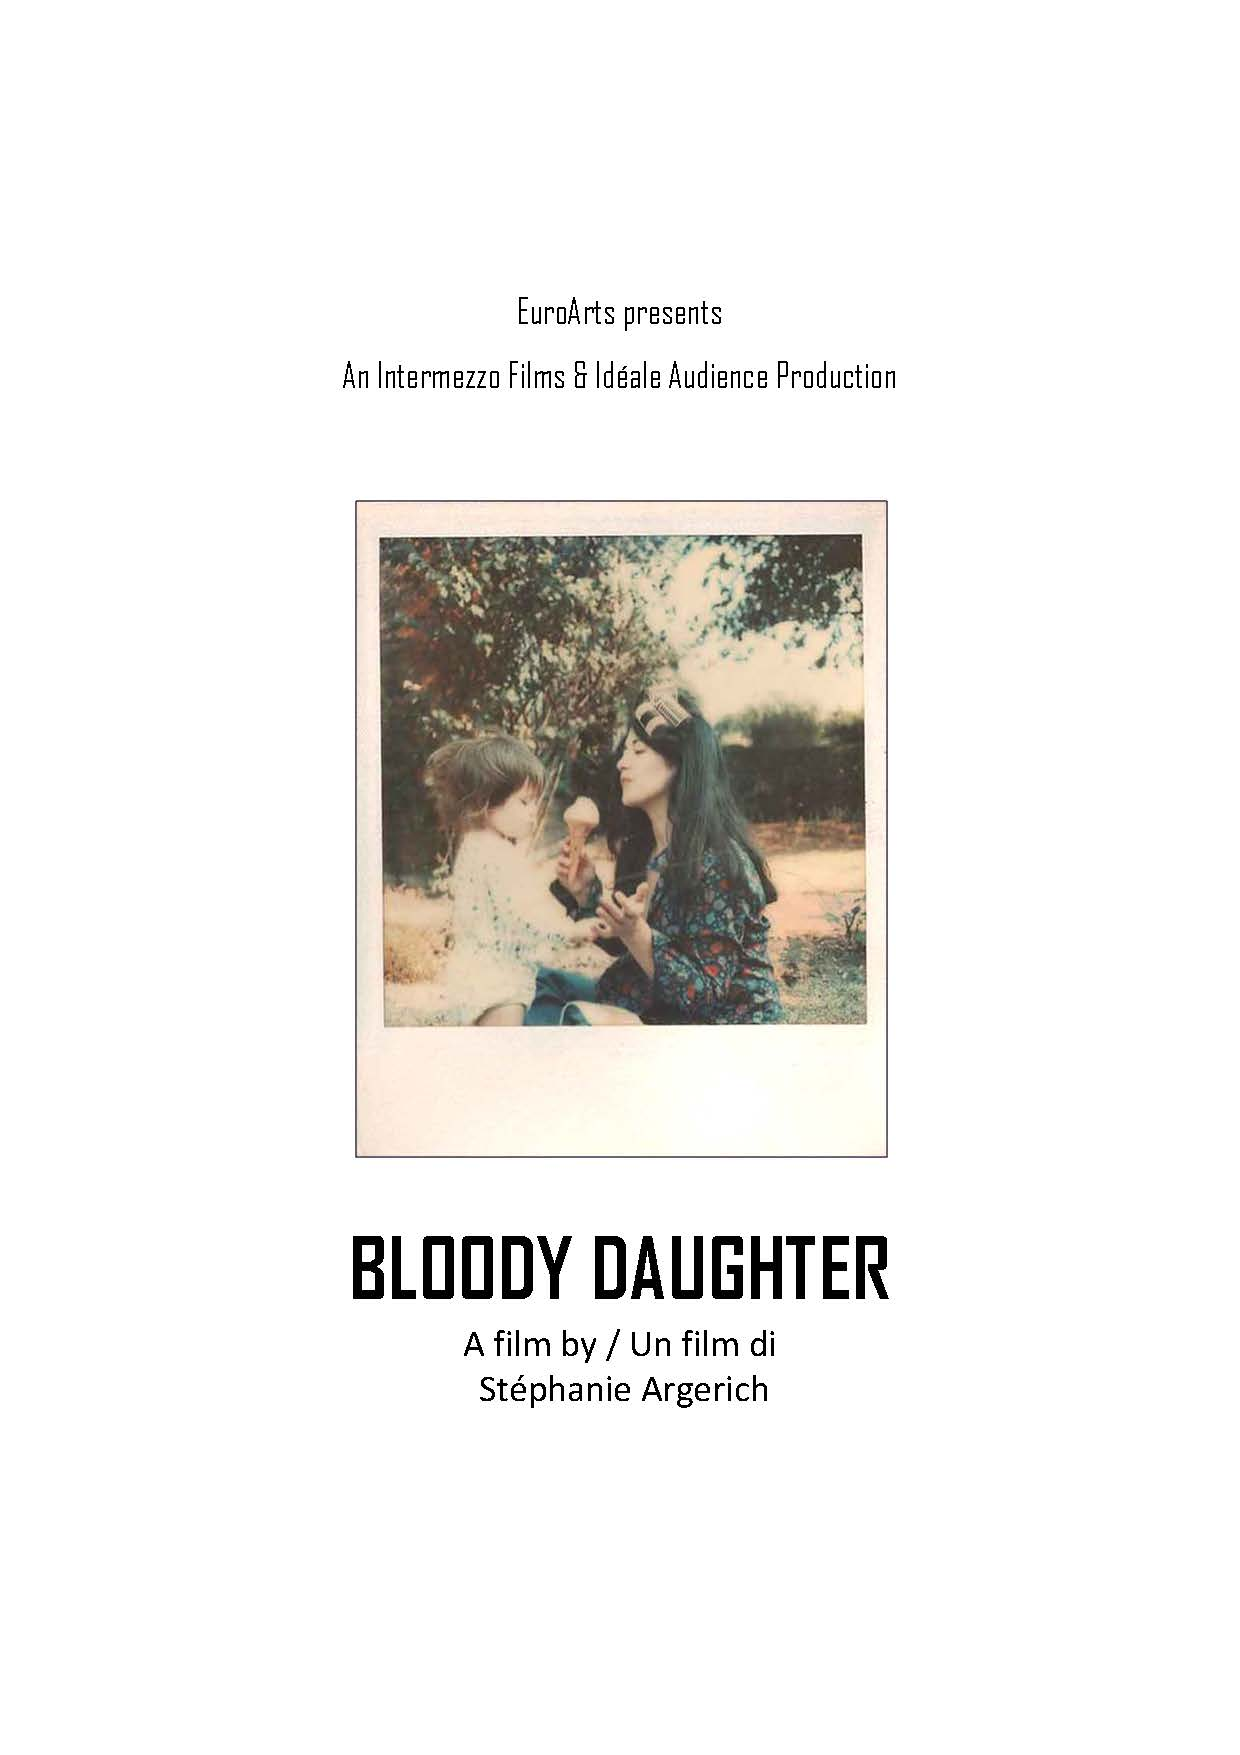 Presskit Bloody Daughter 1